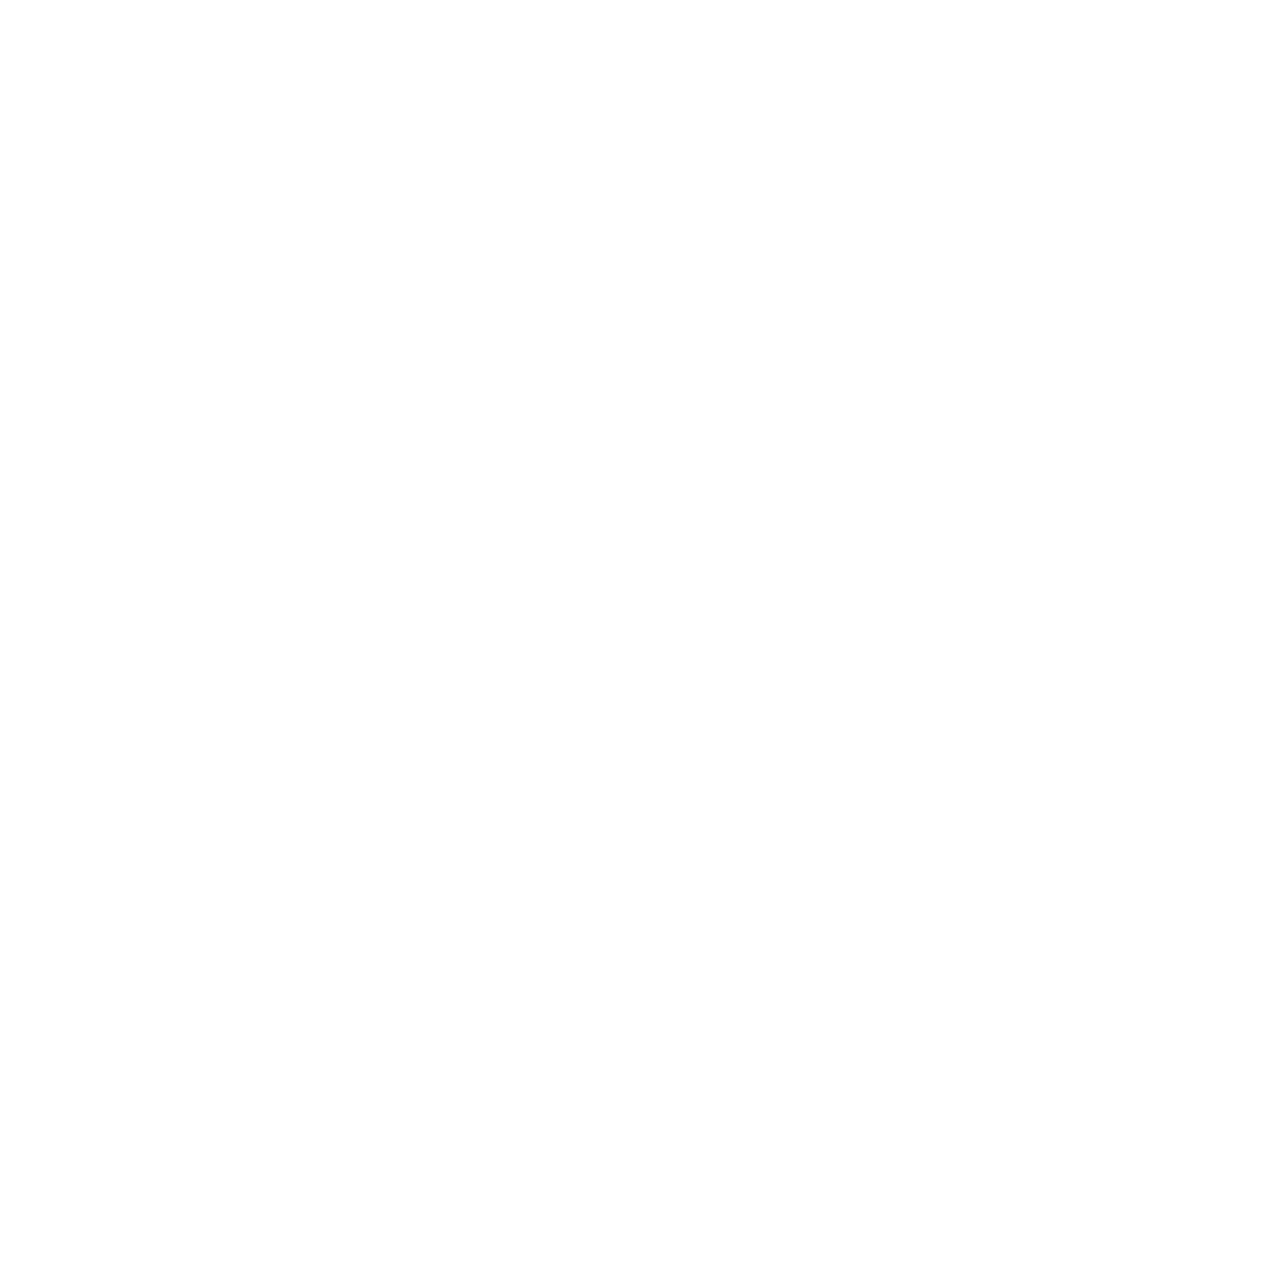 Adam Faircloth